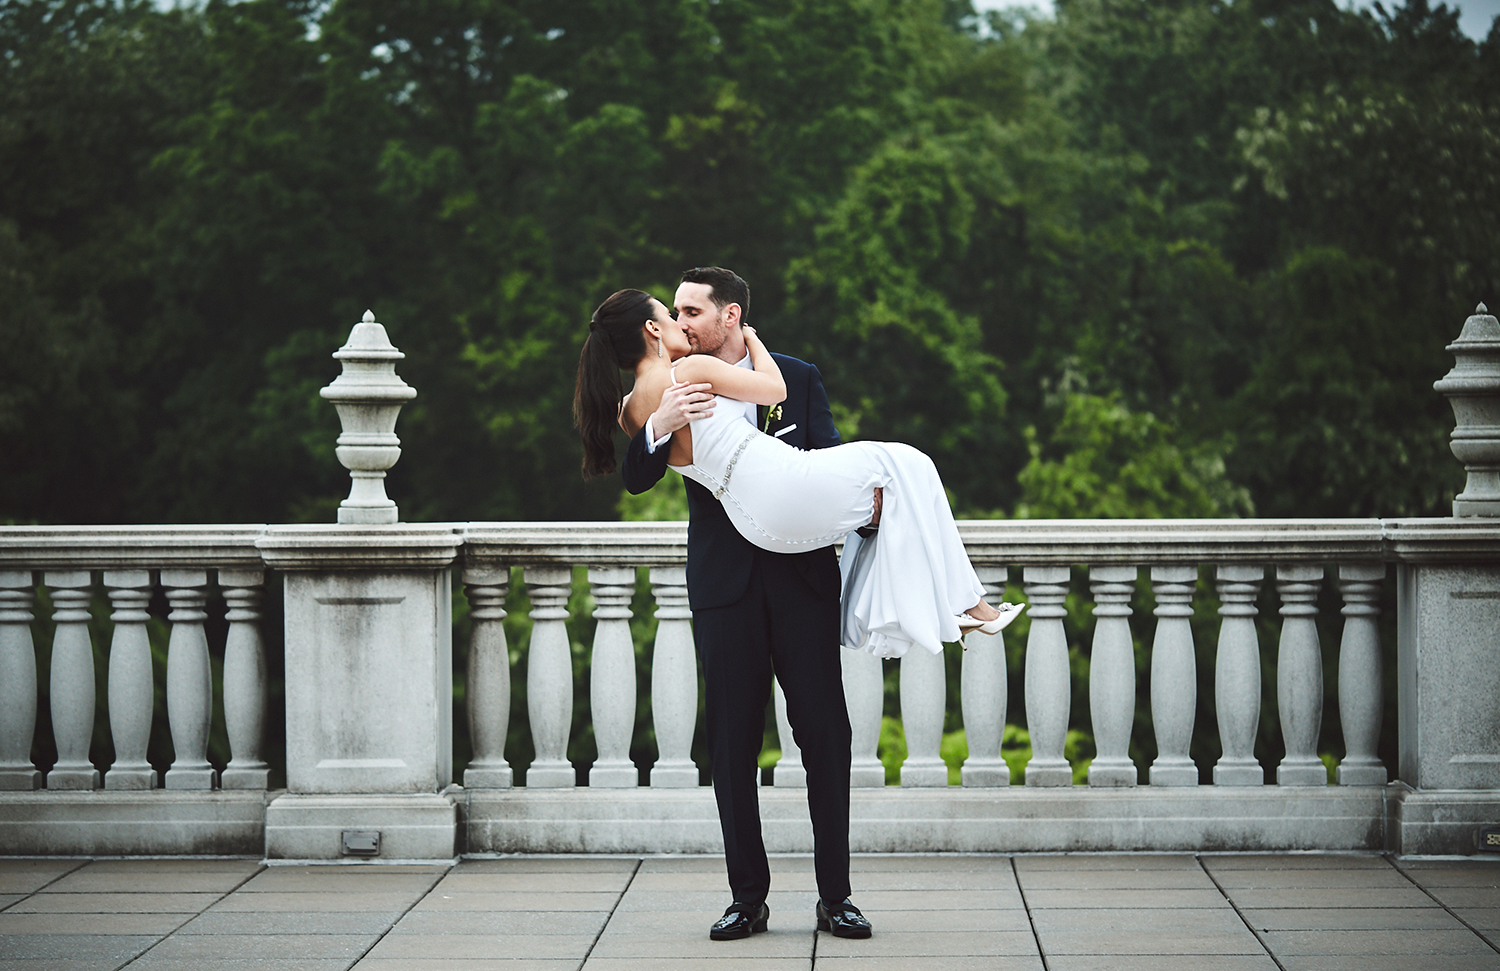 180519_PalaceatSomersetParkWeddingPhotography_NJWeddingPhotographer_By_BriJohnsonWeddings_0082.jpg